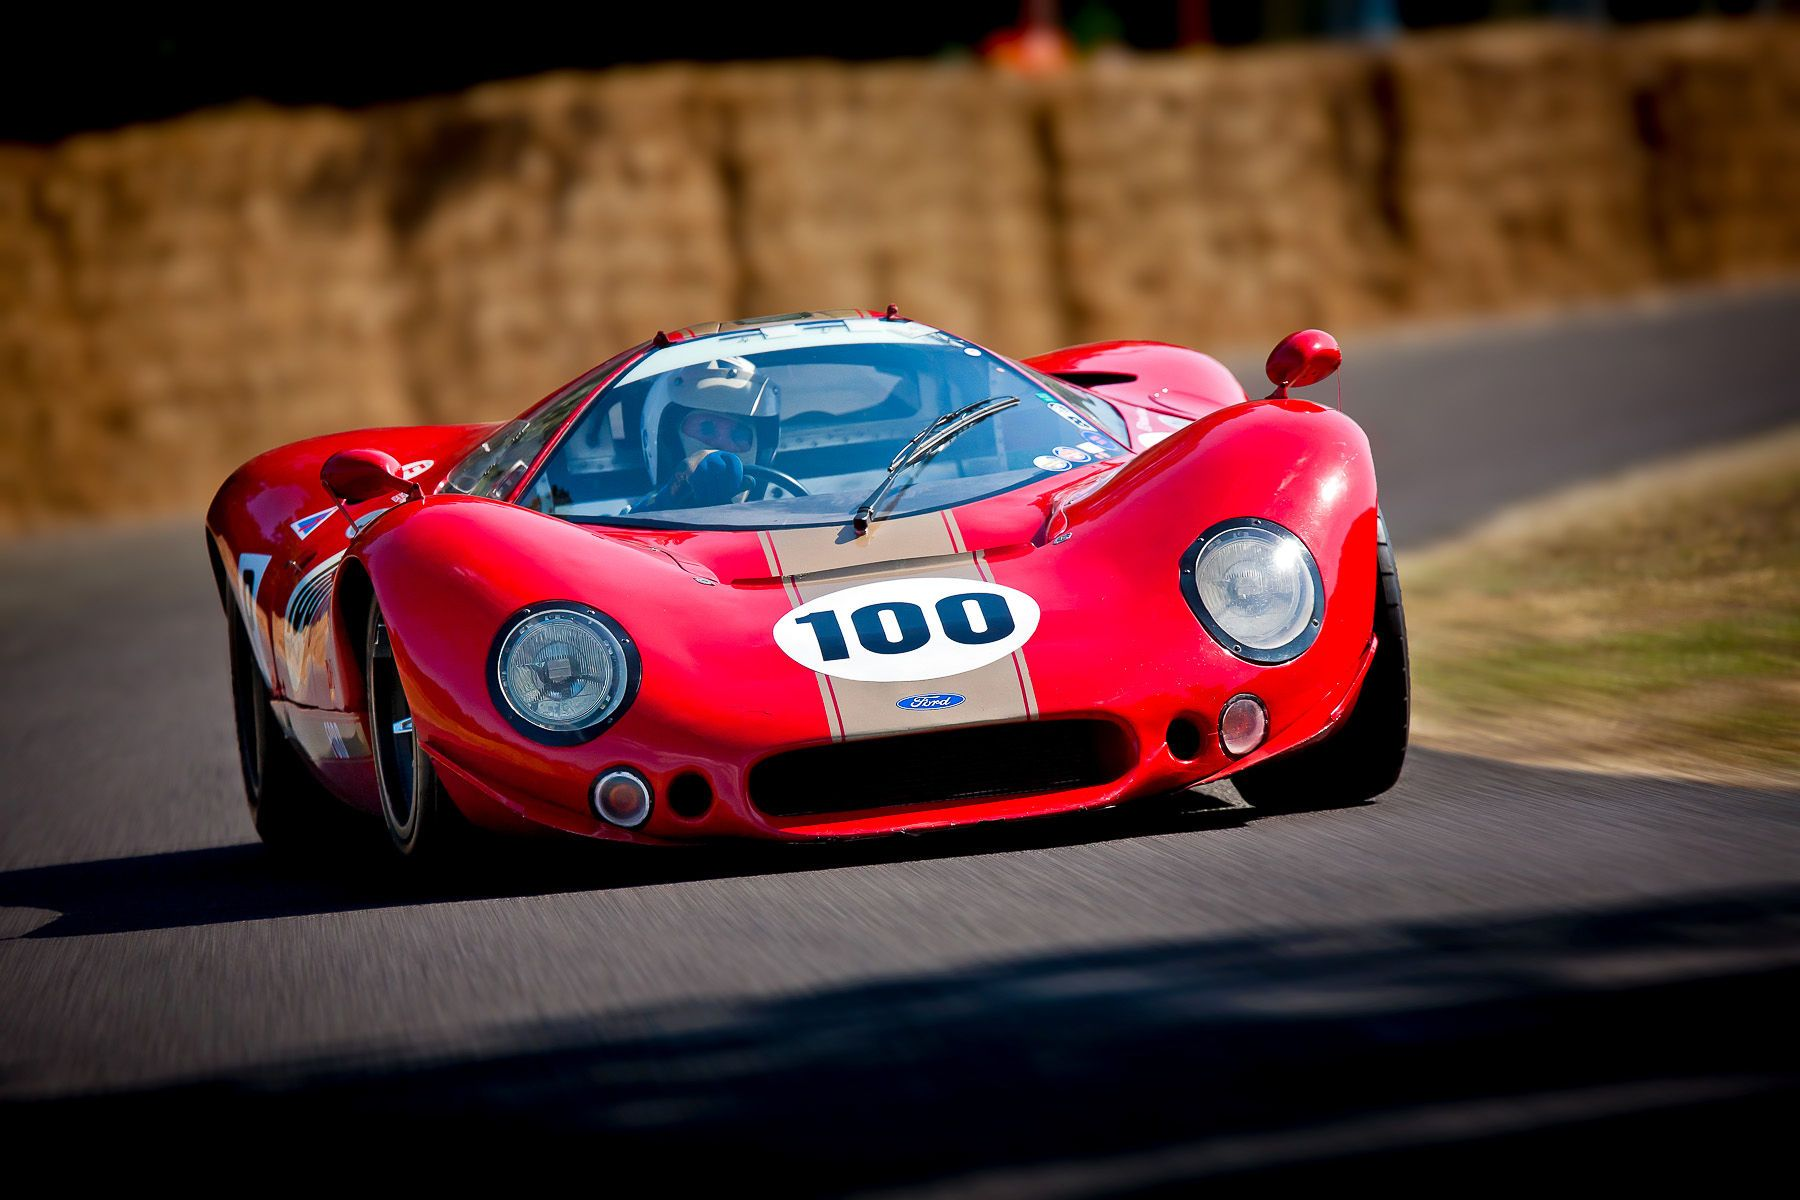 1goodwood_3162_b.jpg